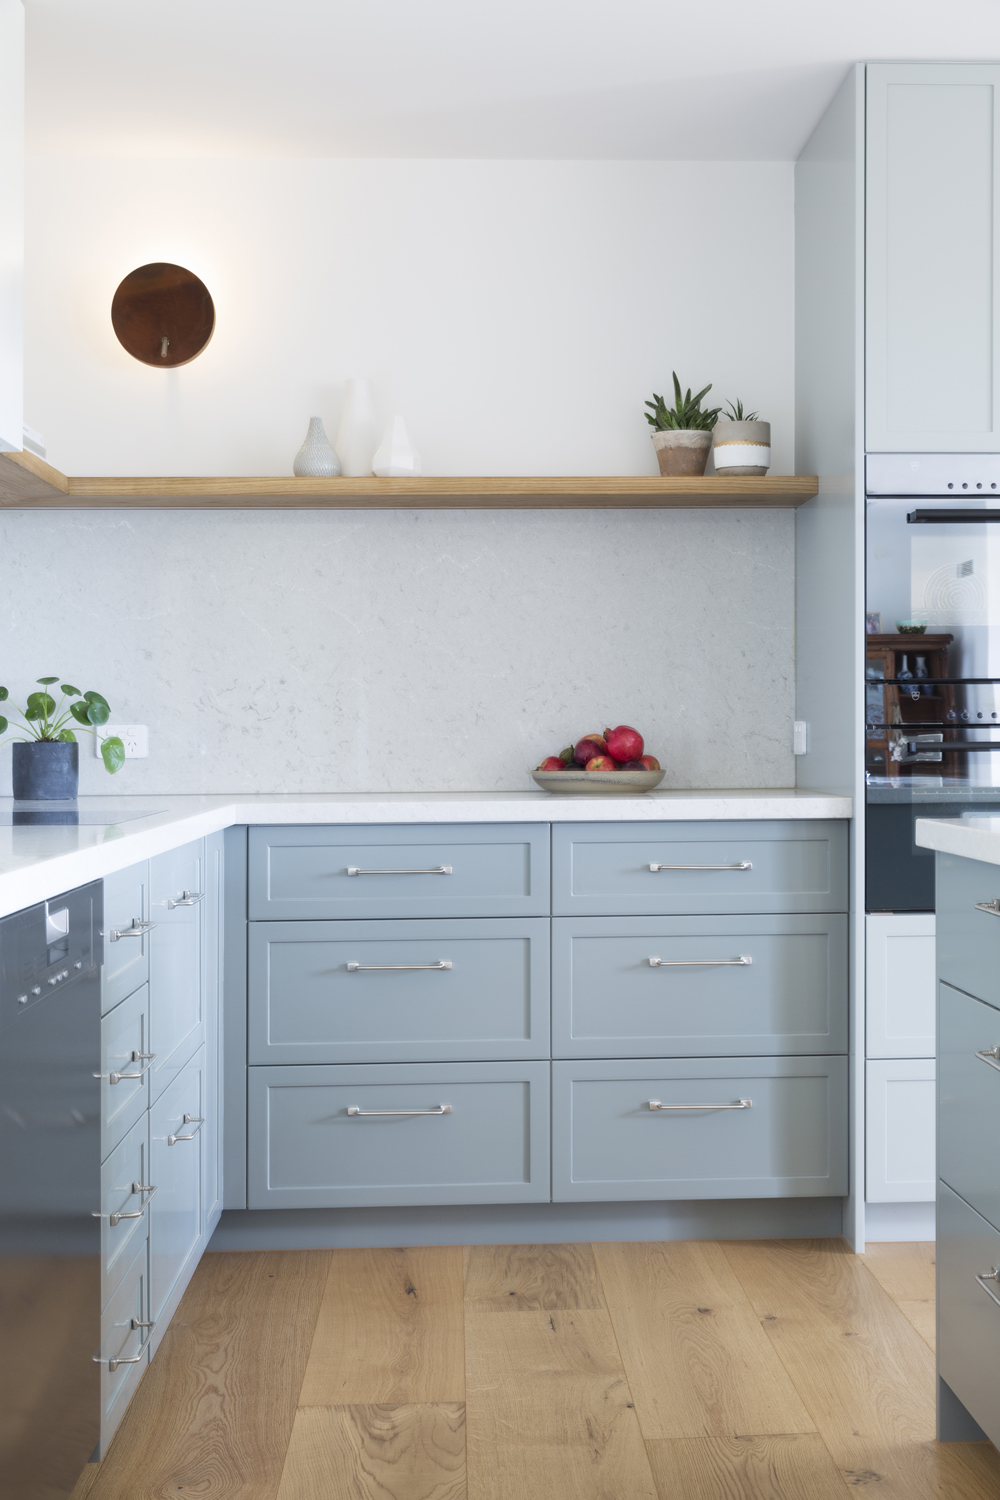 Kitchen design Melbourne interior designer Meredith Lee